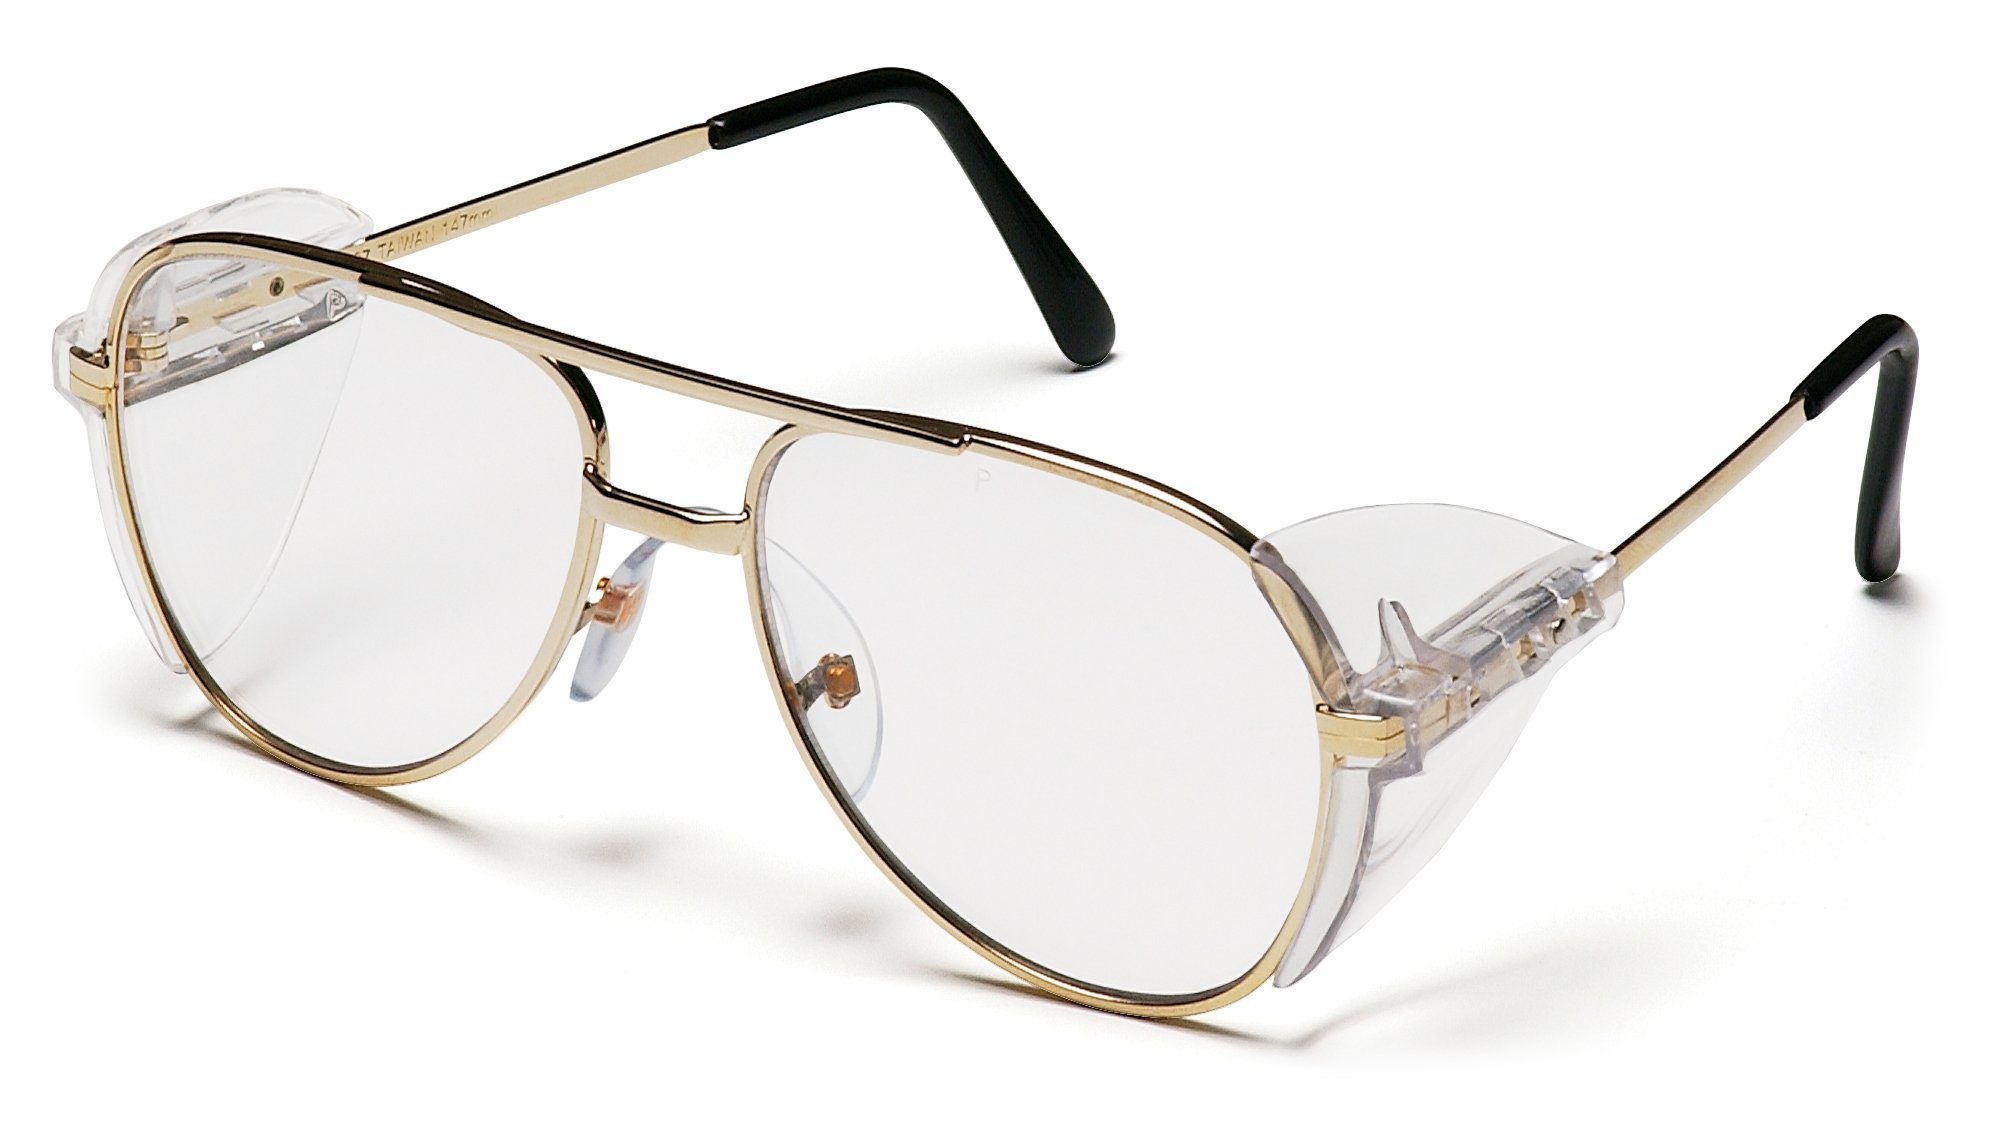 Pyramex Pathfinder Aviator Safety Glasses with Gold Frame and Clear Lens